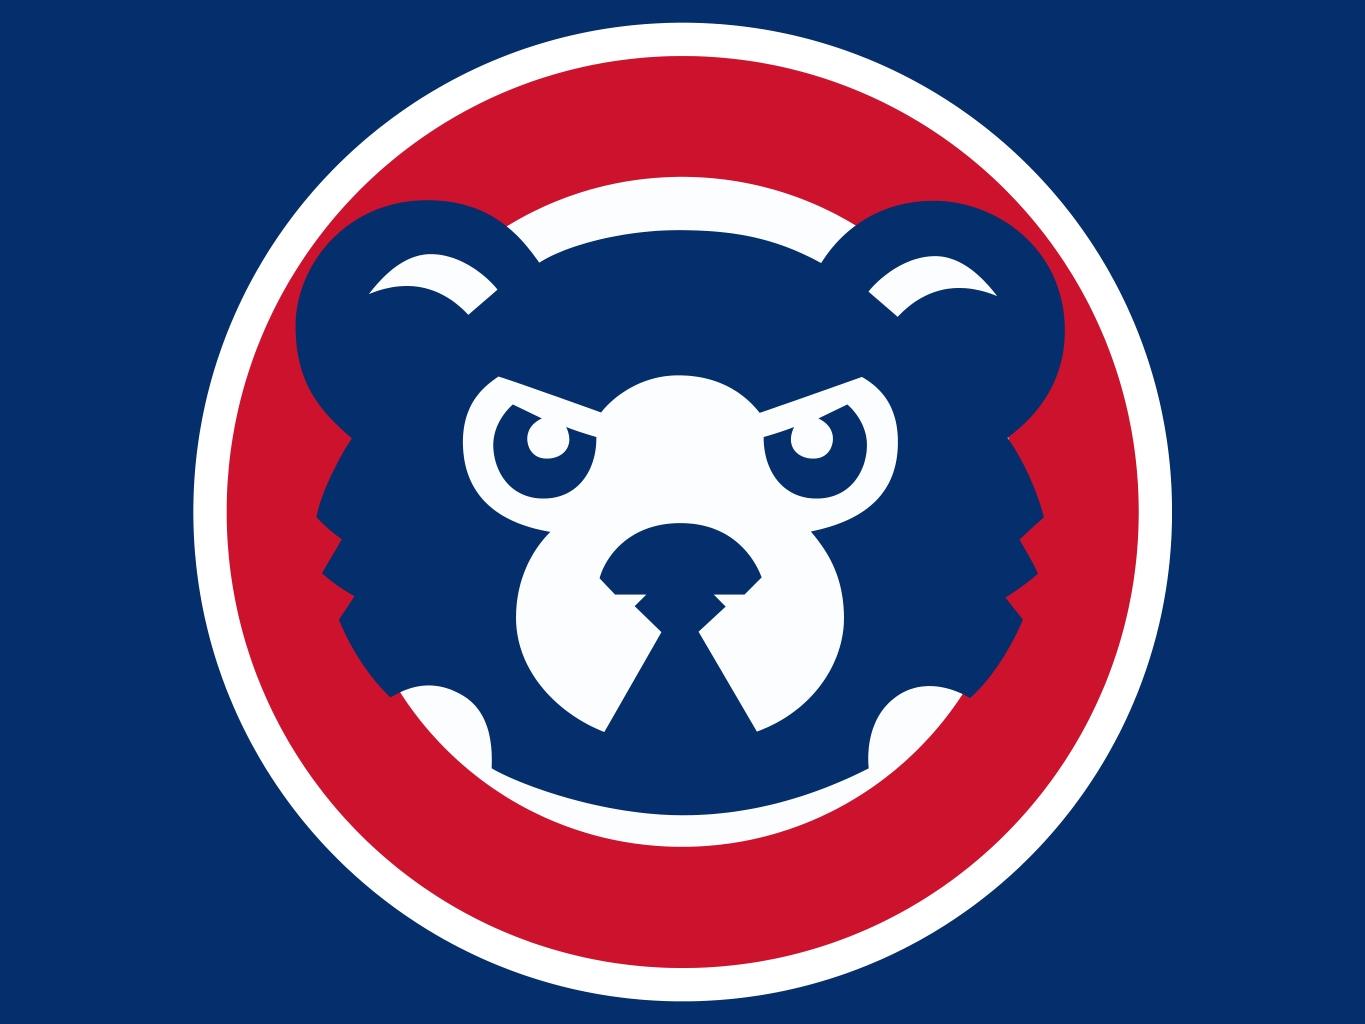 The Cubs began play in 1870 as the Chicago White Stockings joining the National League NL in 1876 as a charter member Owner William Hulbert signed multiple star